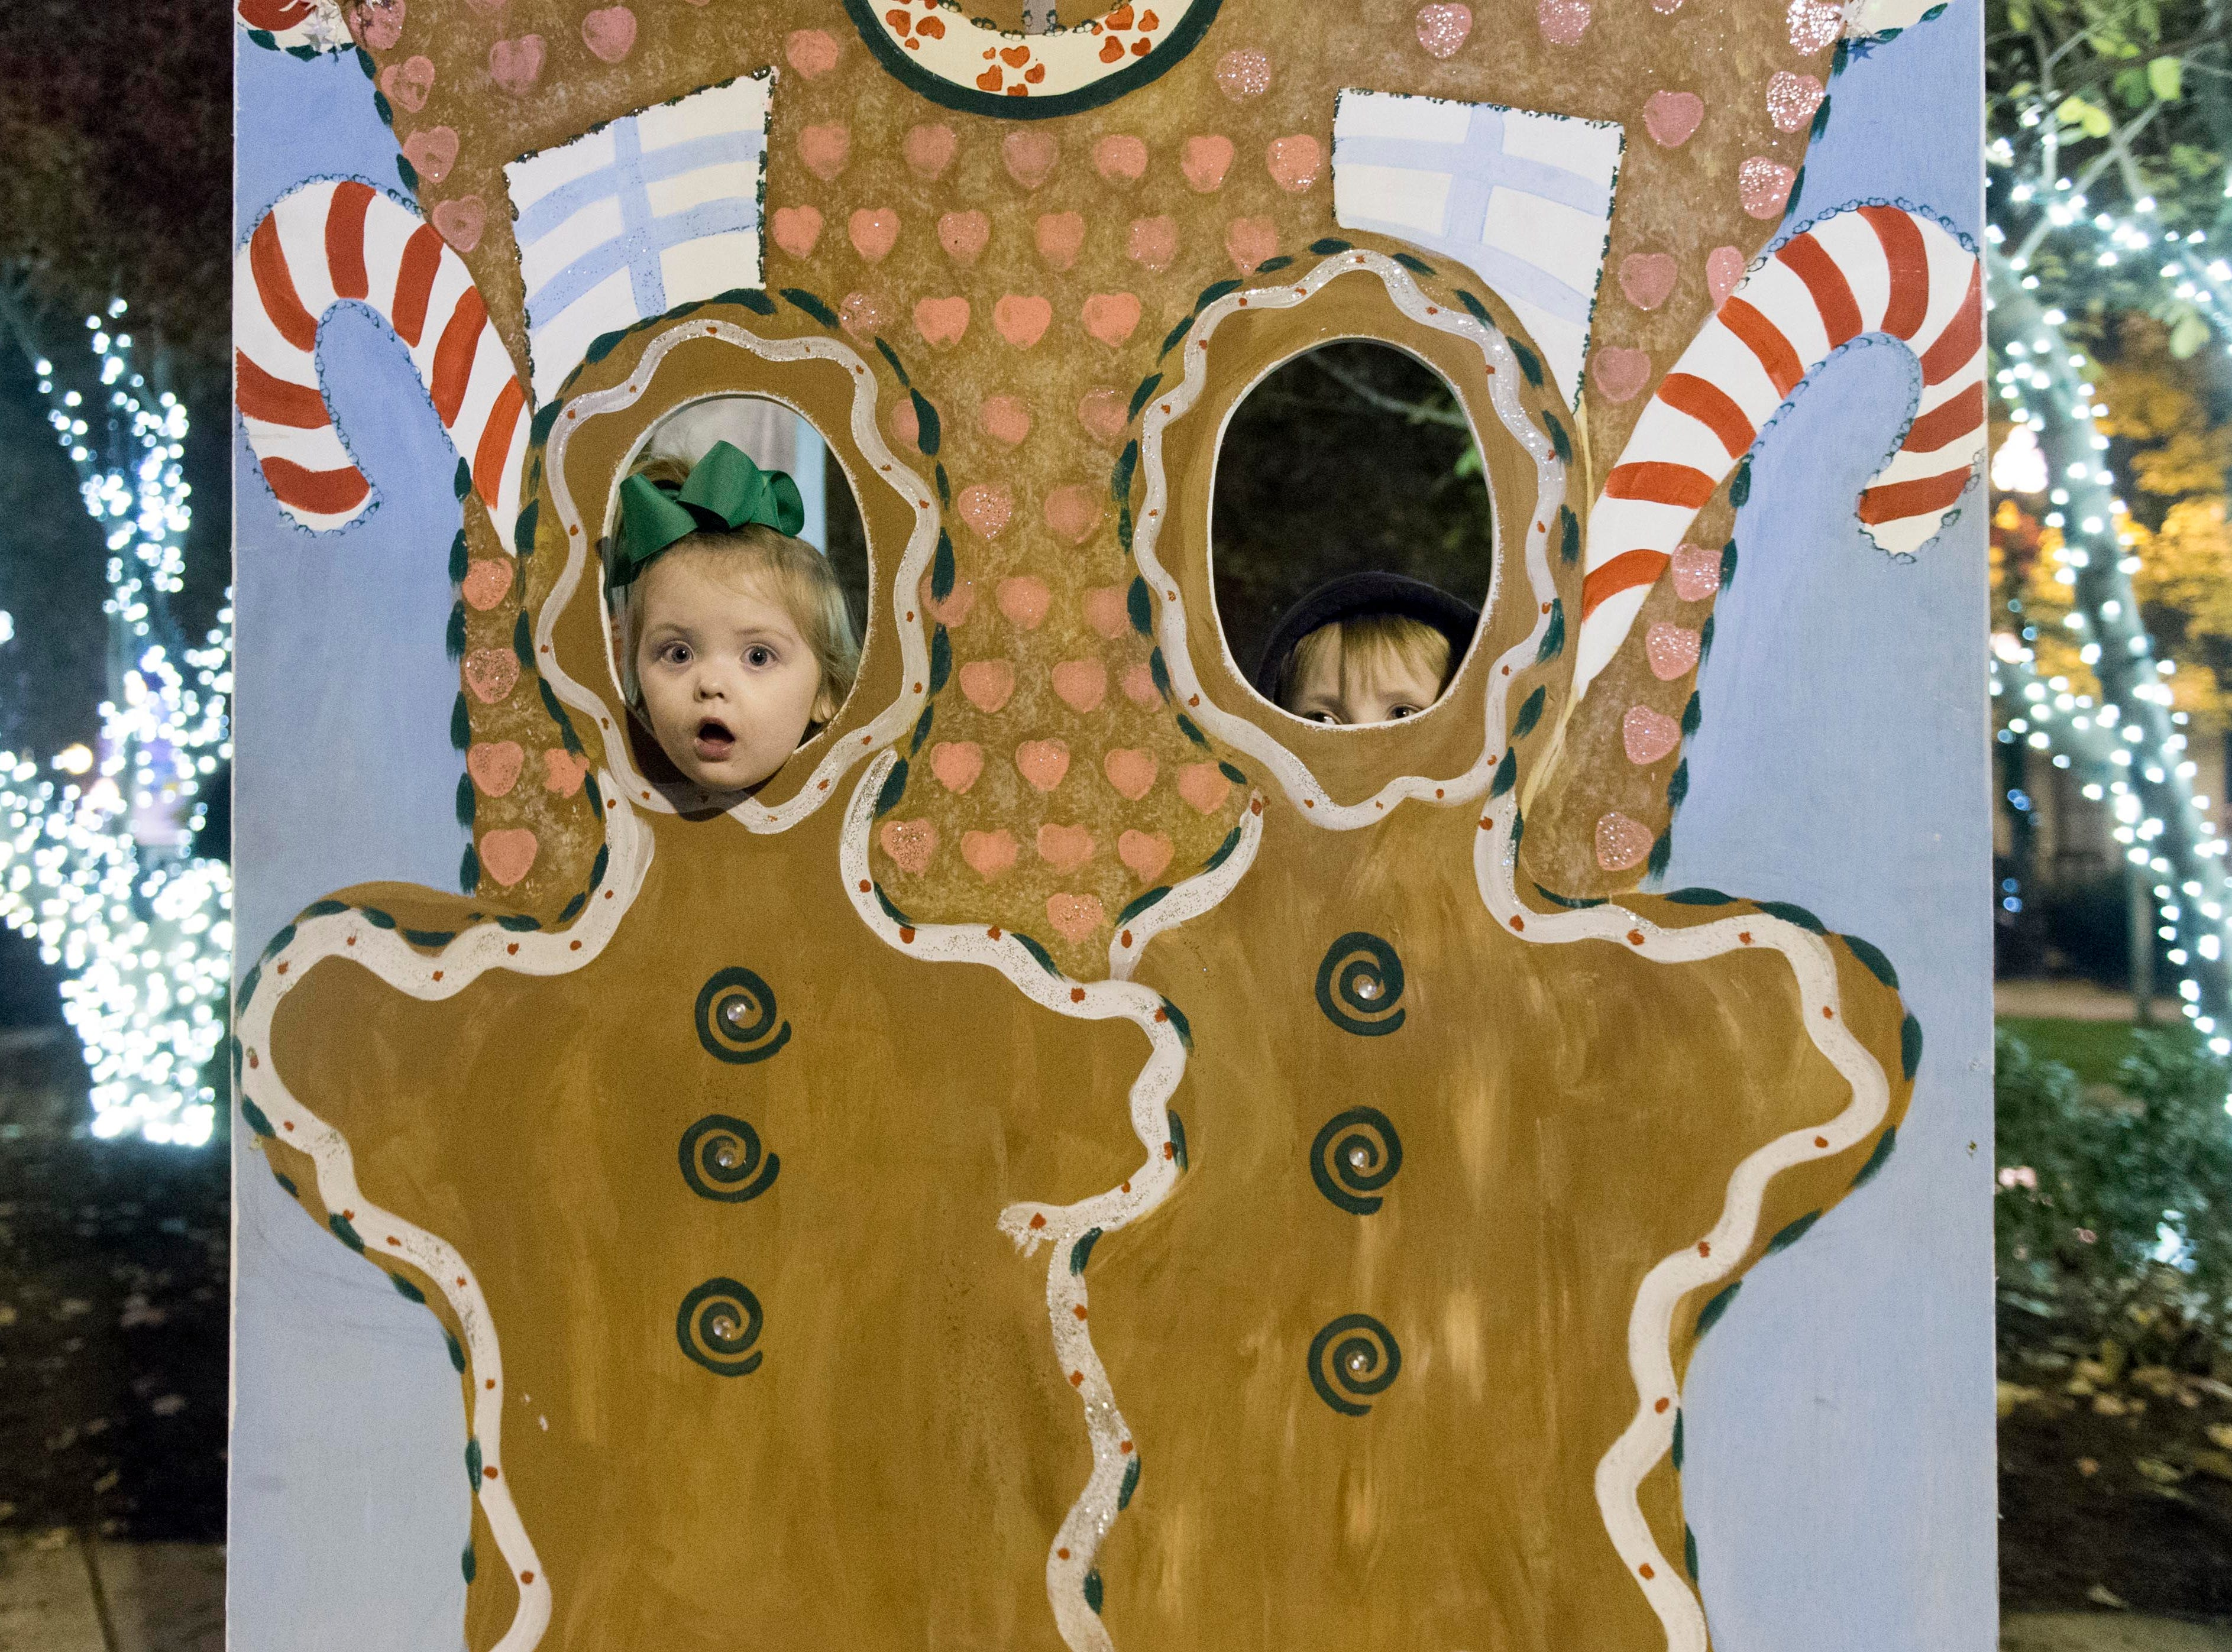 Henley Doss shows herself through a cutout as her brother   Braylen peeks through the hole at the City of Knoxville's Christmas in the City kick-off celebration.